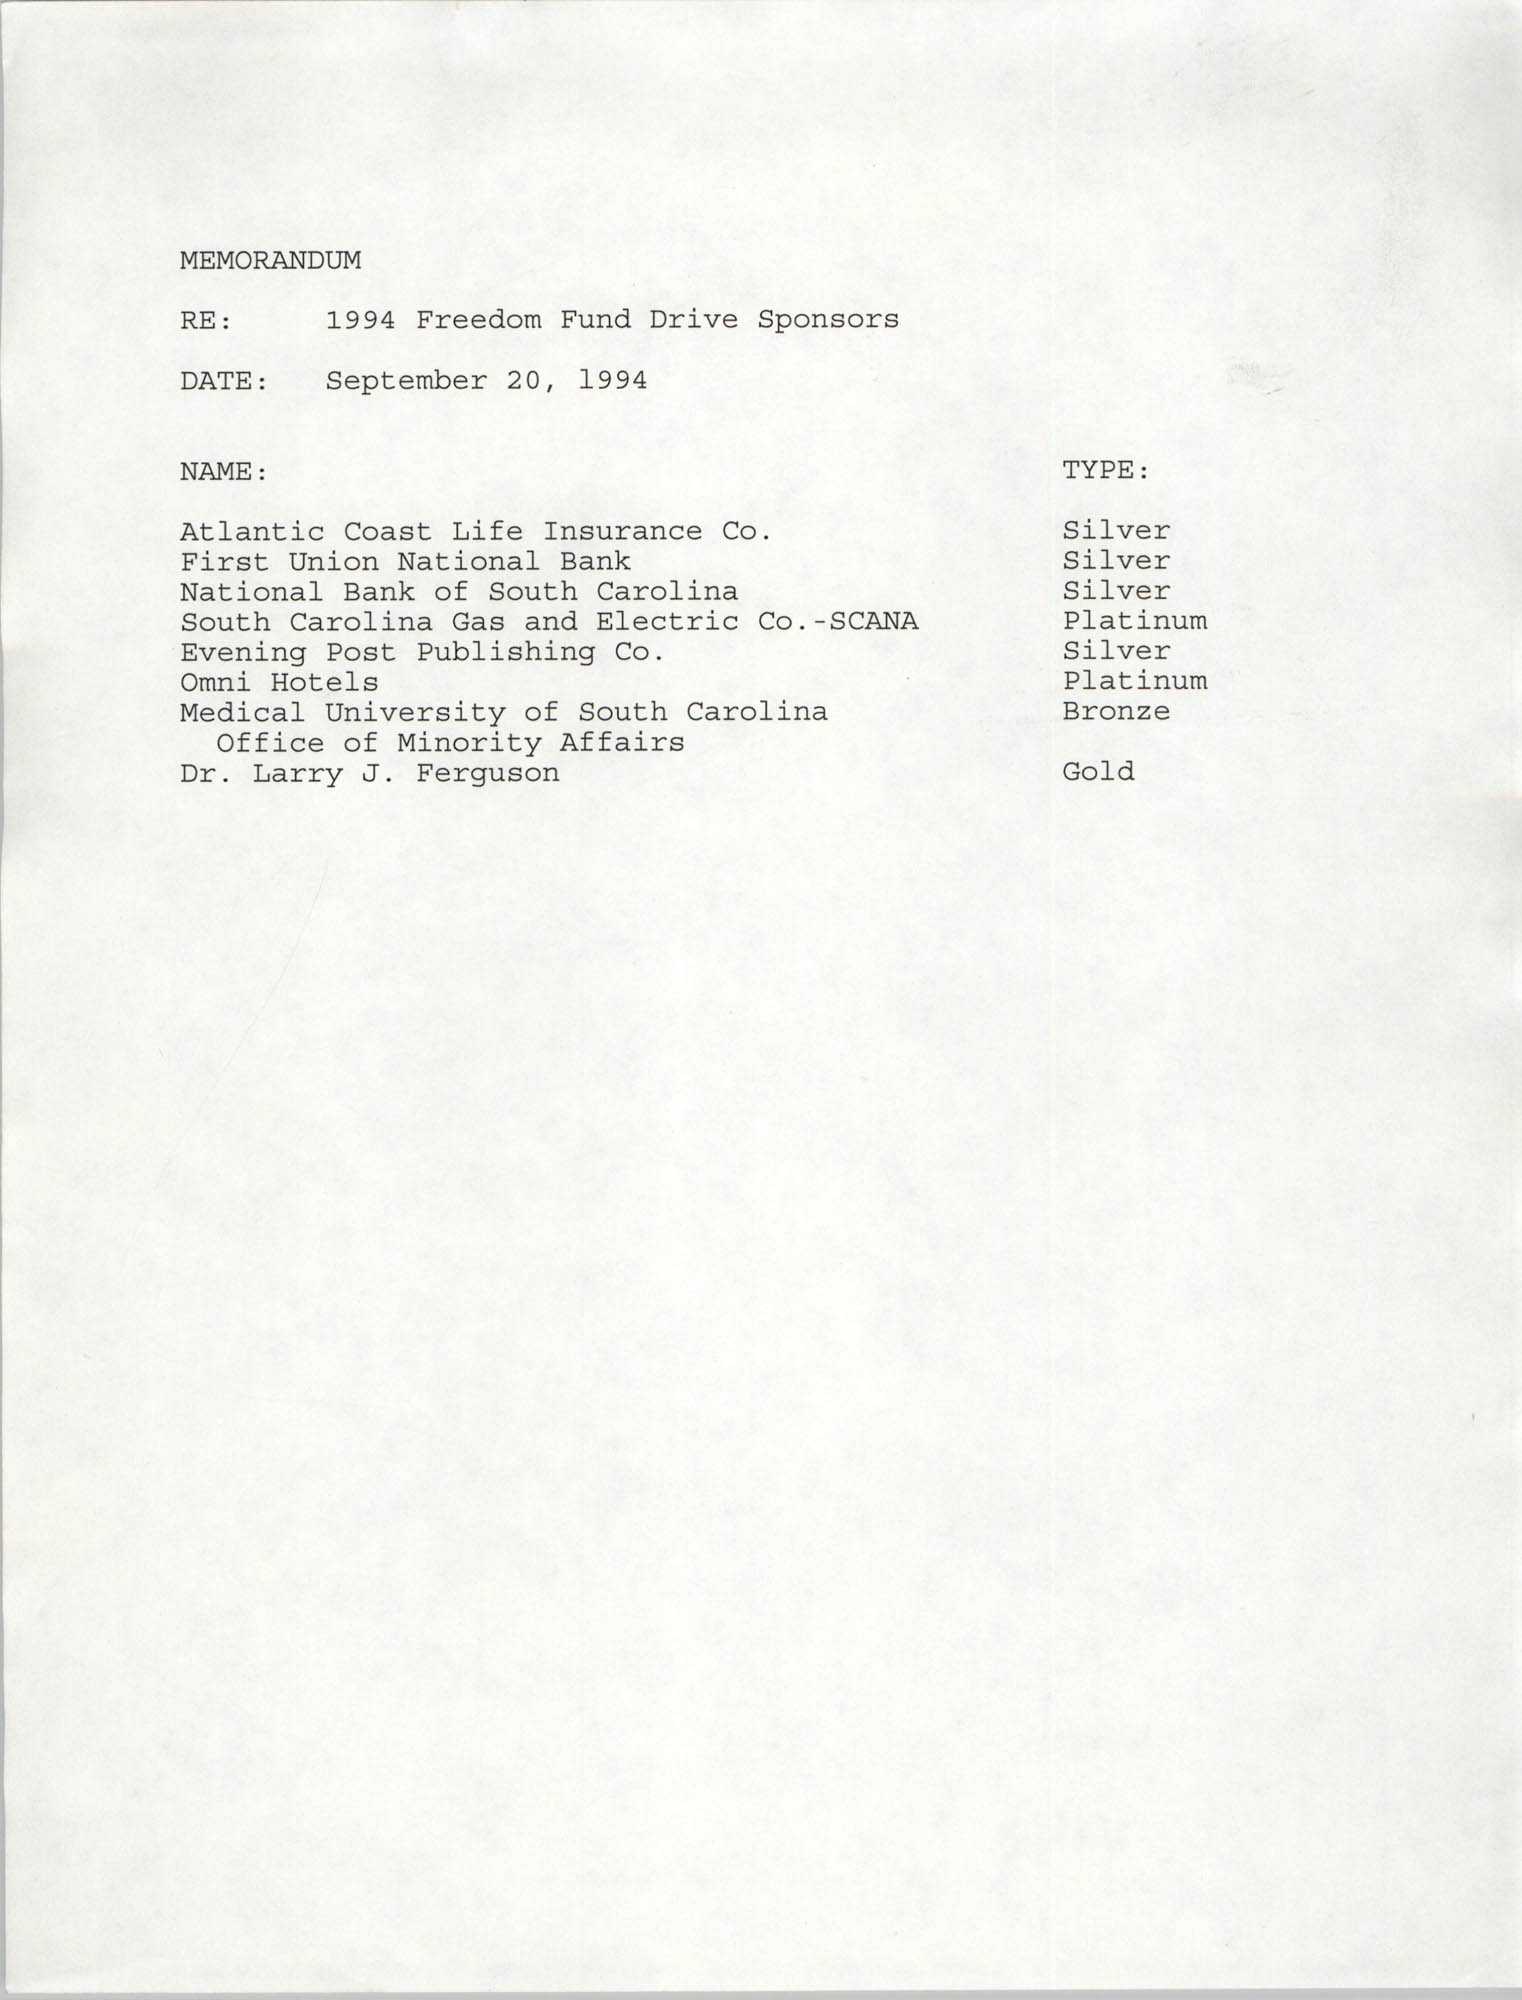 Charleston Branch NAACP Memorandum, September 20, 1994